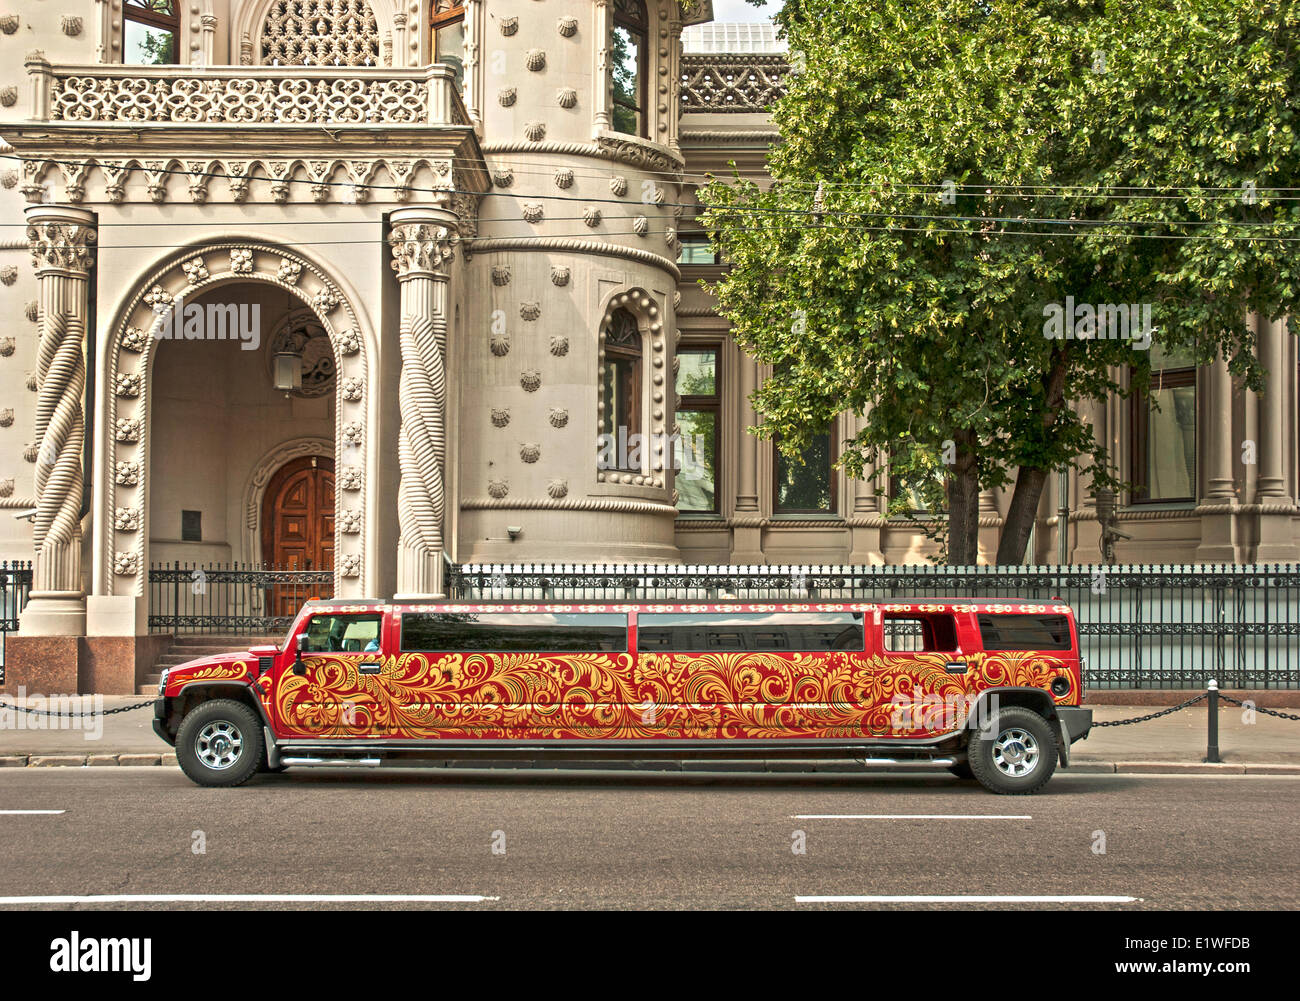 Stretched Hummer limousine on the streets of Moscow - Stock Image